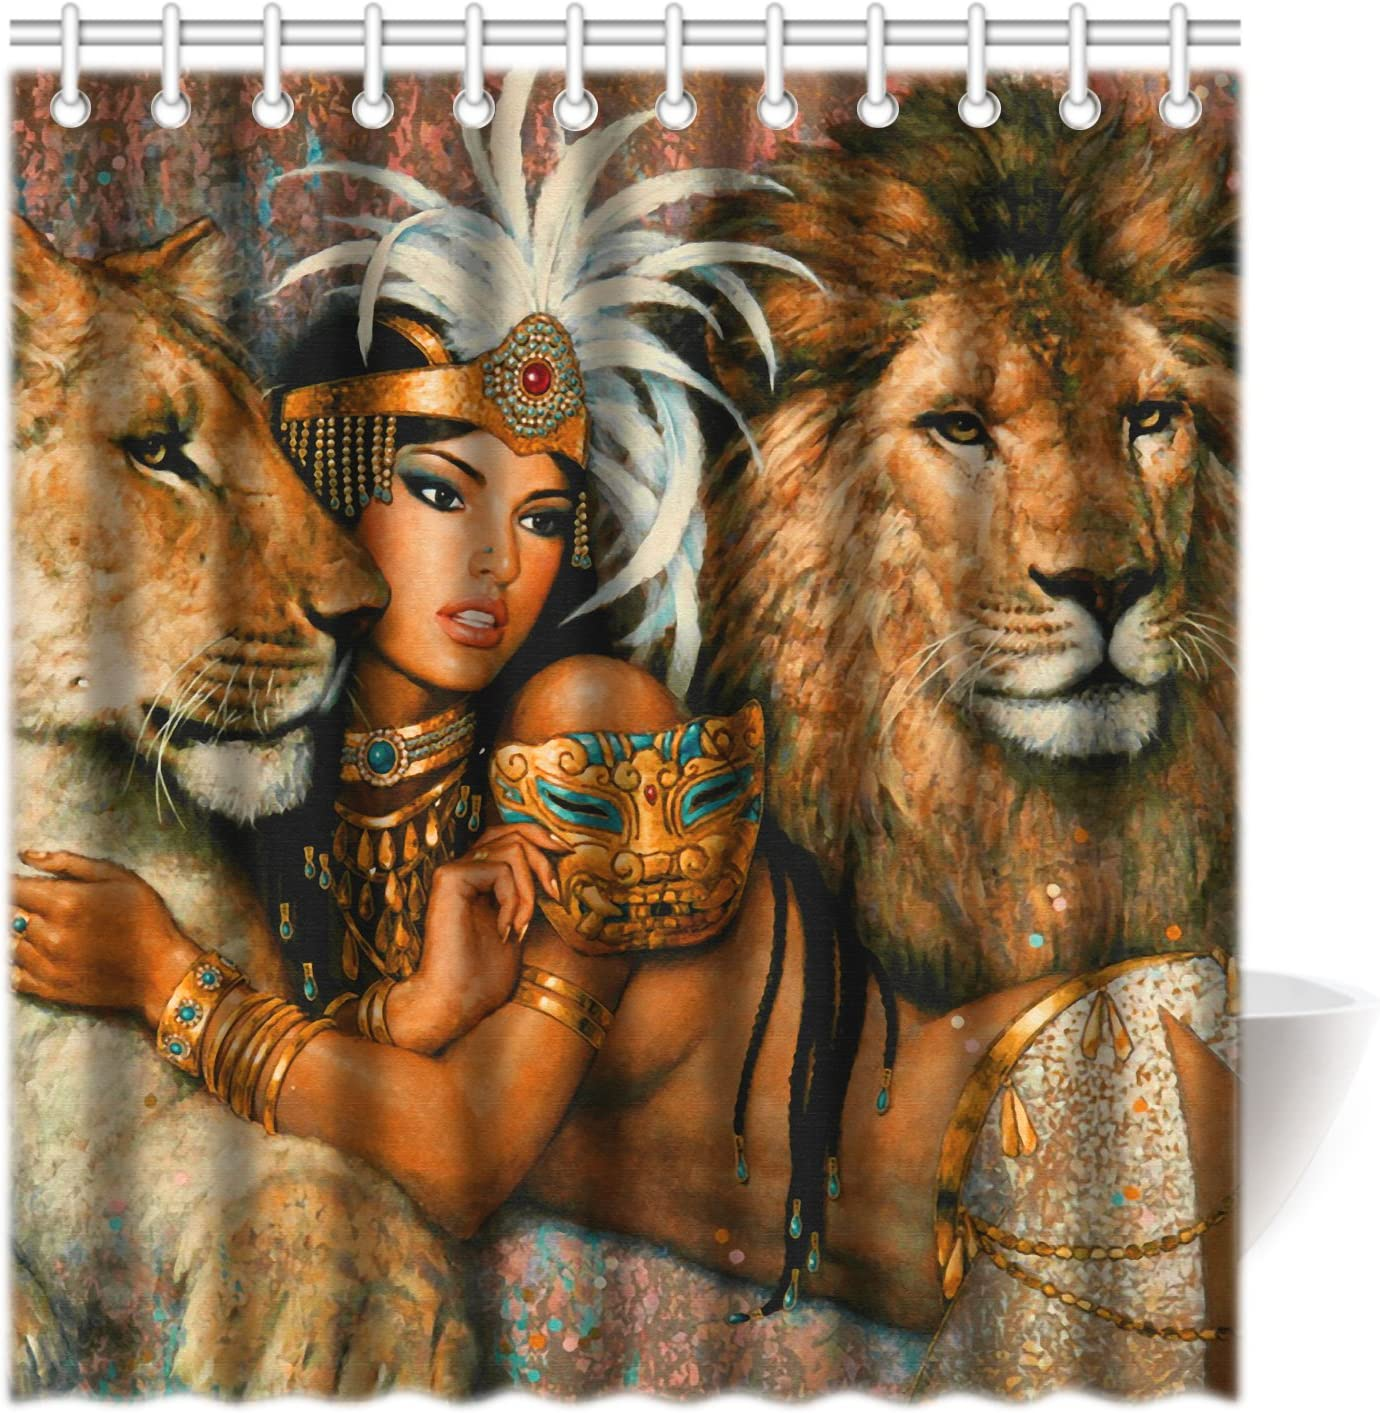 CTIGERS Sexy Lioness Shower Curtain Beautiful African Women and Lion Polyester Fabric Bathroom Decor 66 x 72 Inch